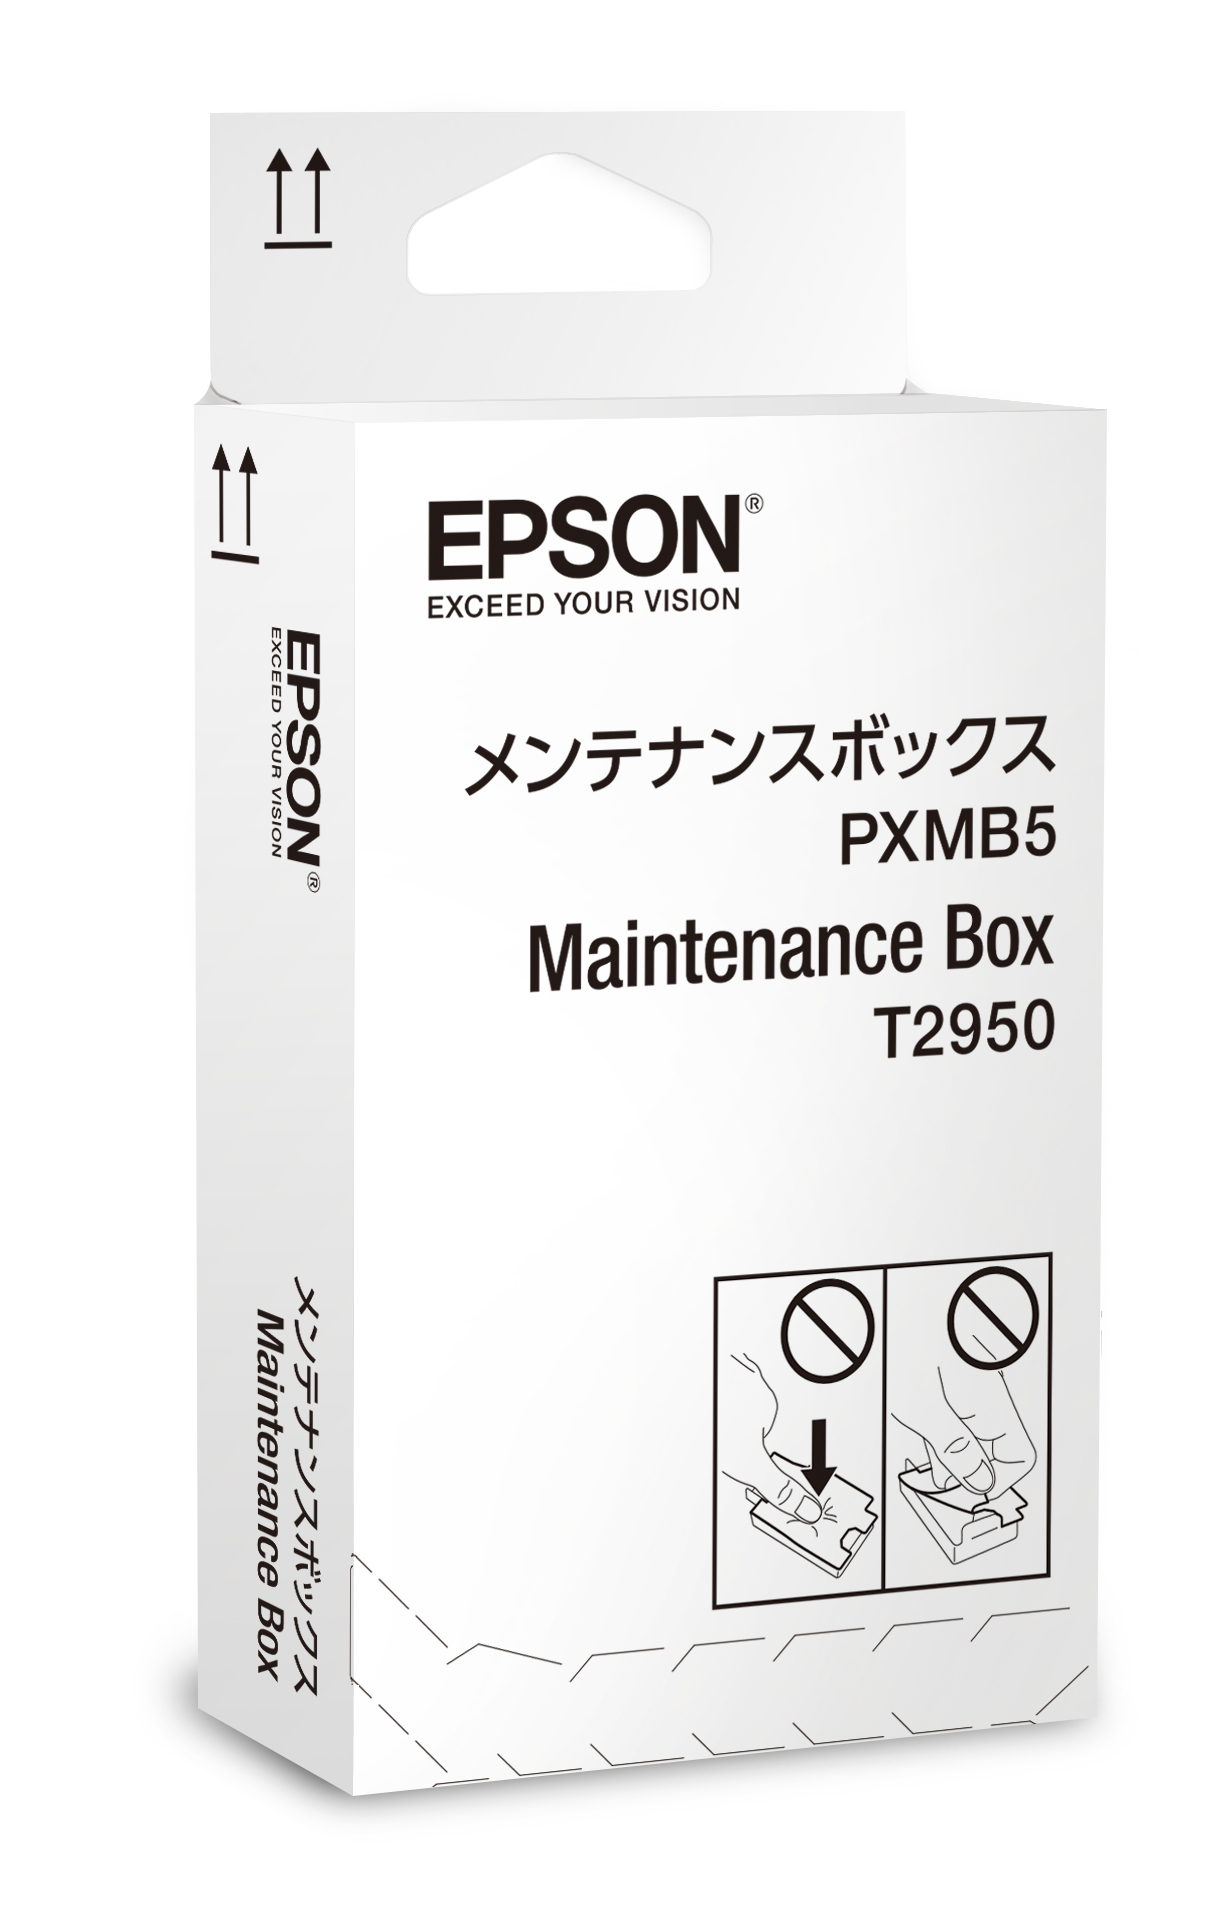 Epson WorkForce WF-100W Series Maintenance Box